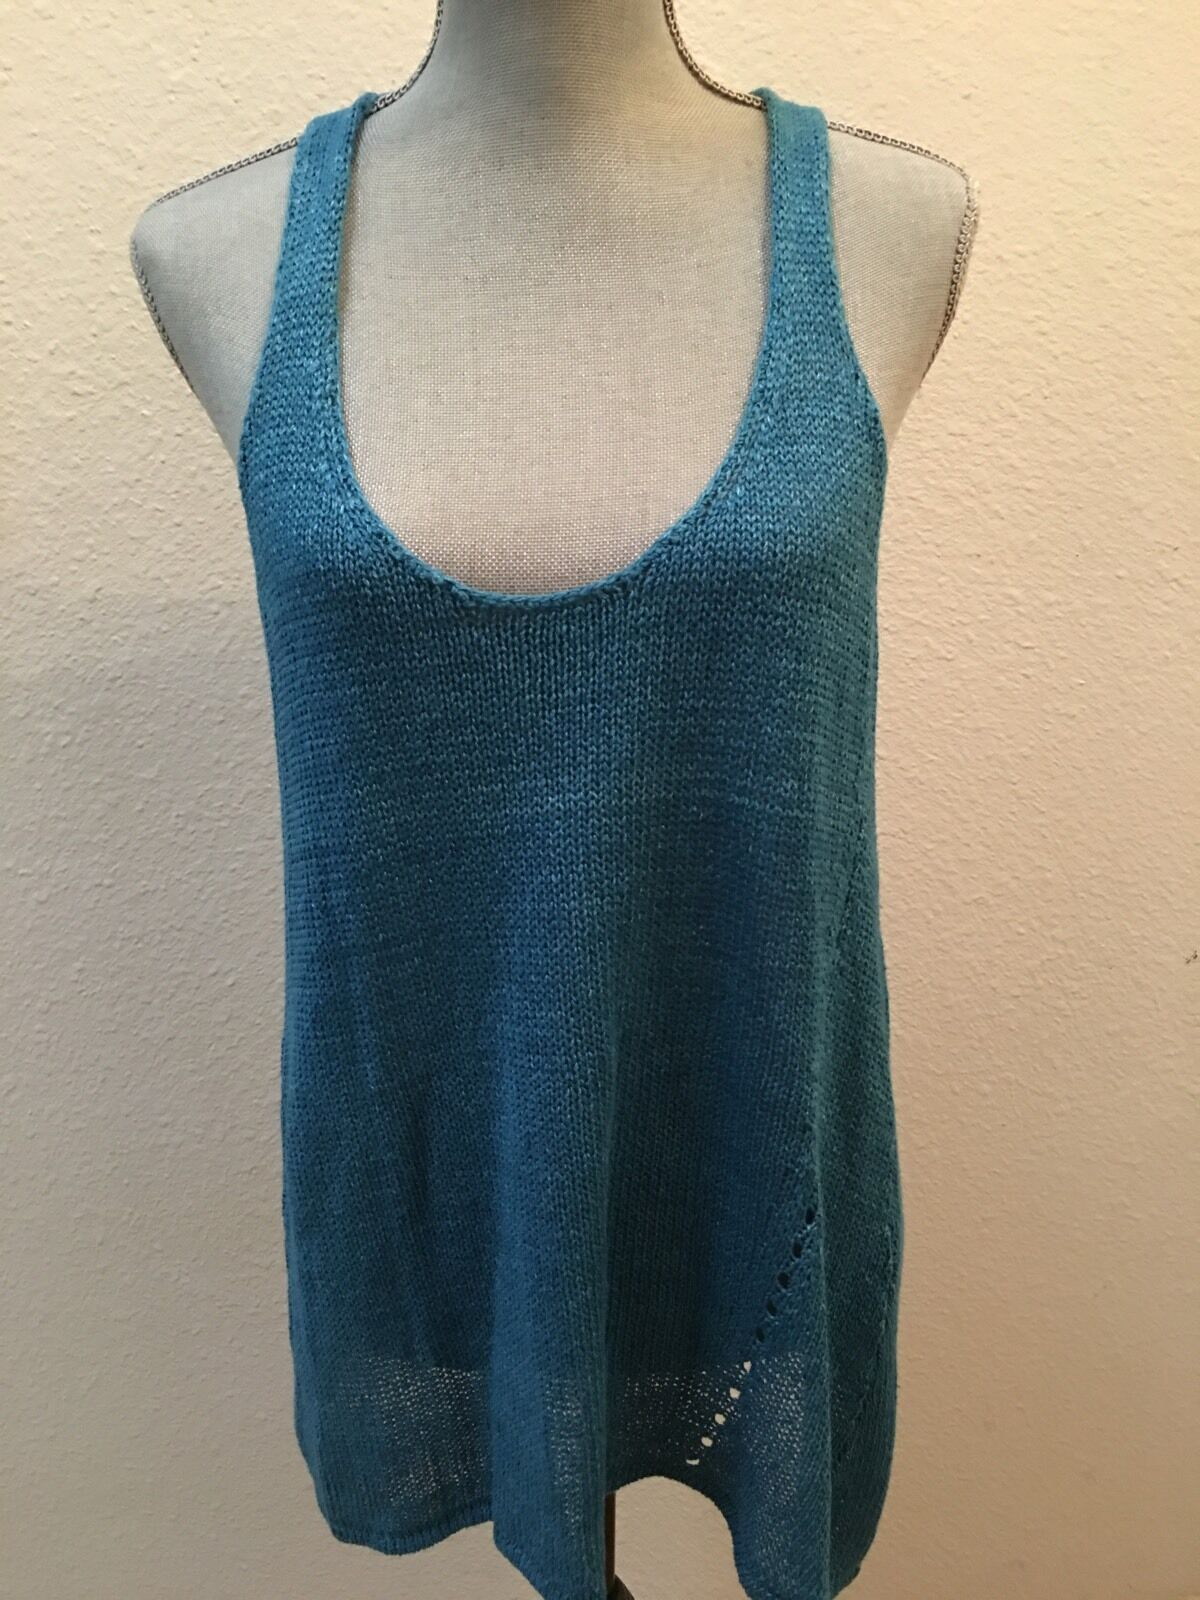 Vince Large L bluee Vest 100% Linen Tunic Sleeveless Sweater Excellent Condition